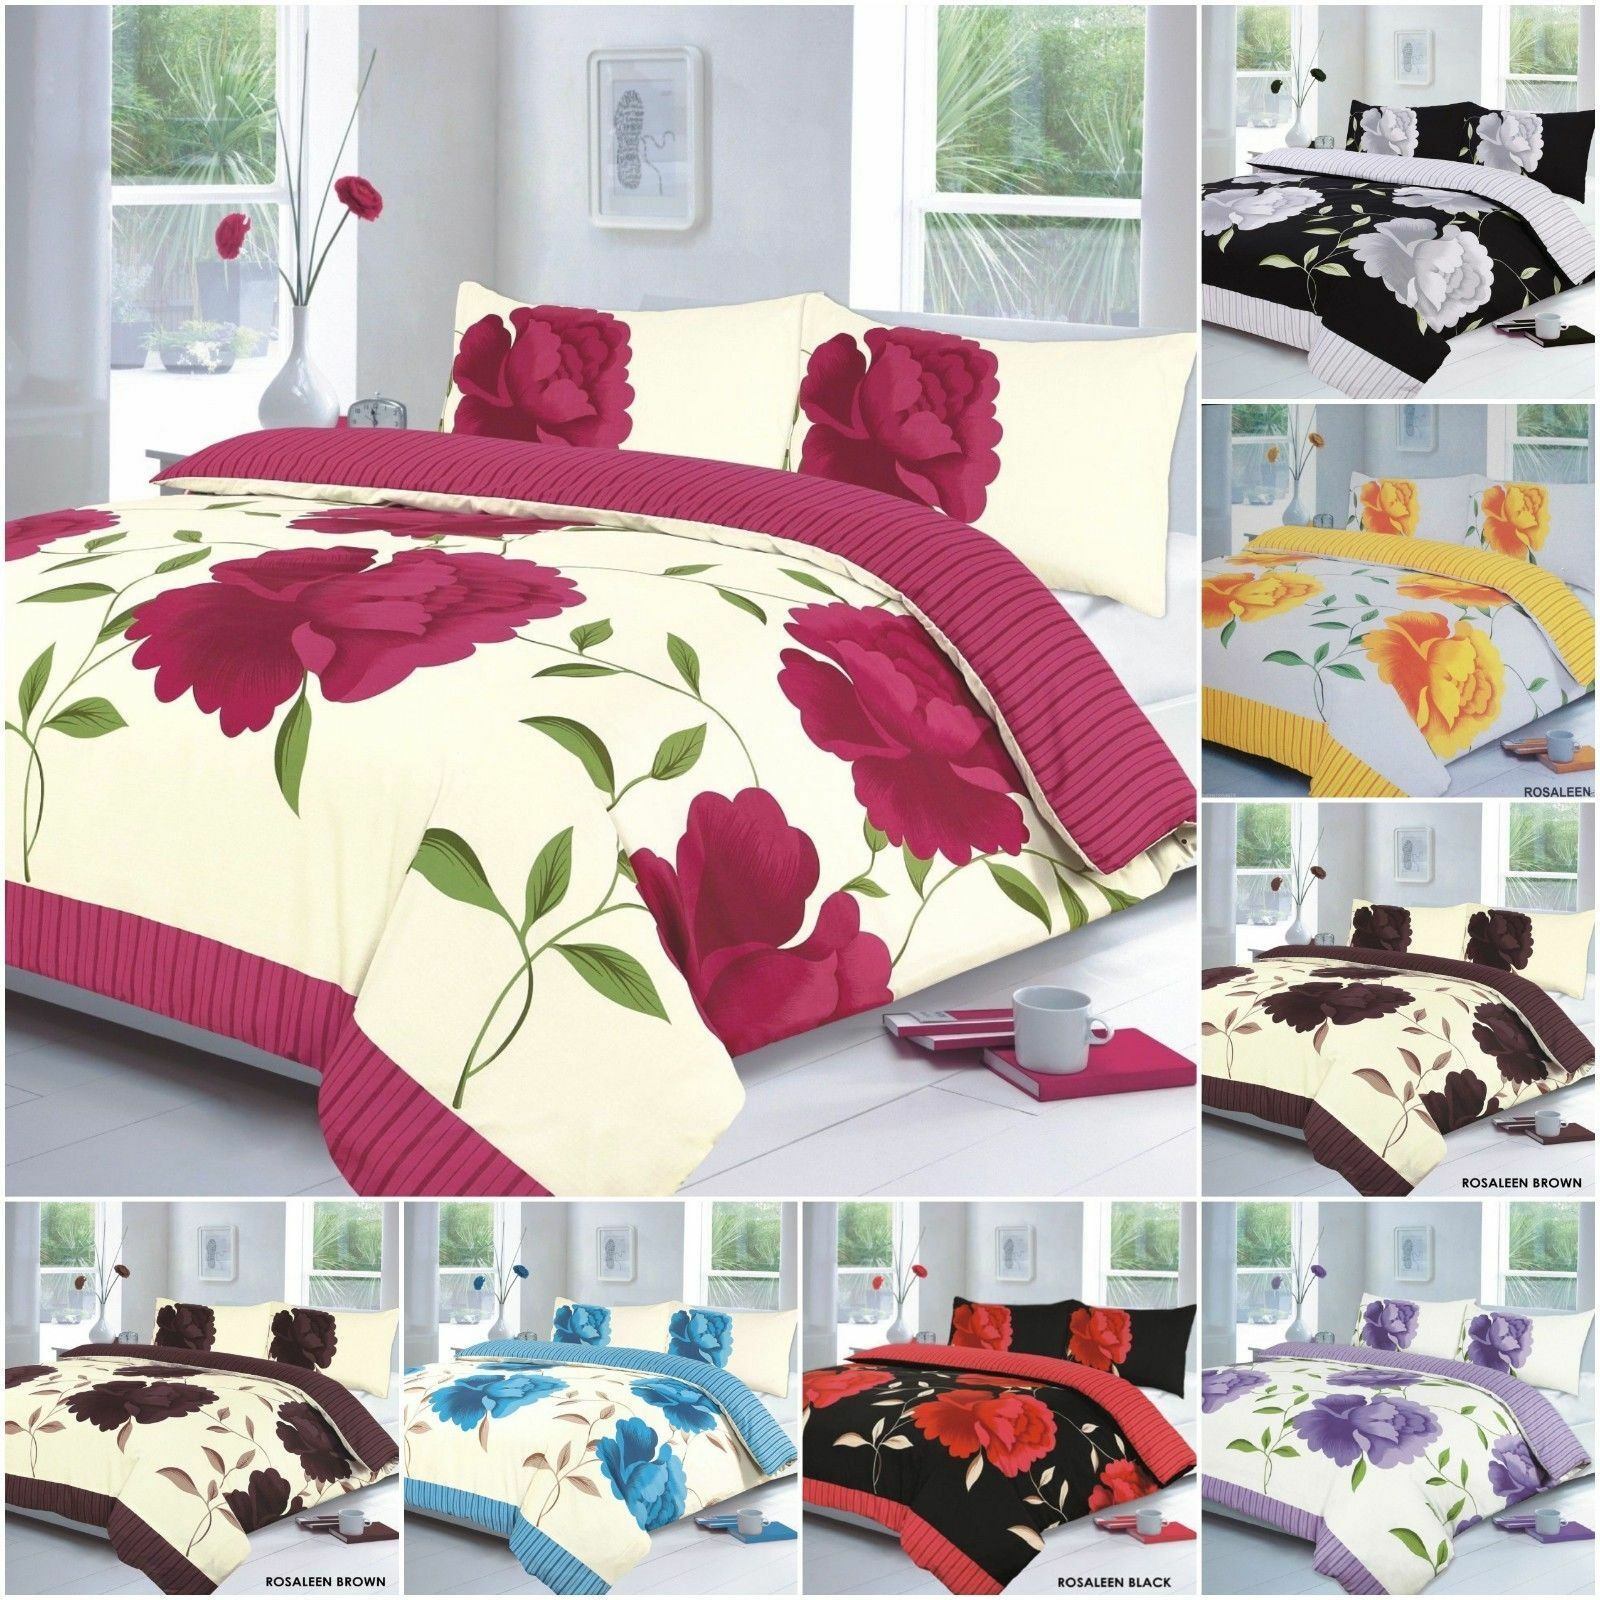 DUVET SET Floral Rosaleen BEDDING BED SETS SINGLE DOUBLE KING SIZE QUILT COVER